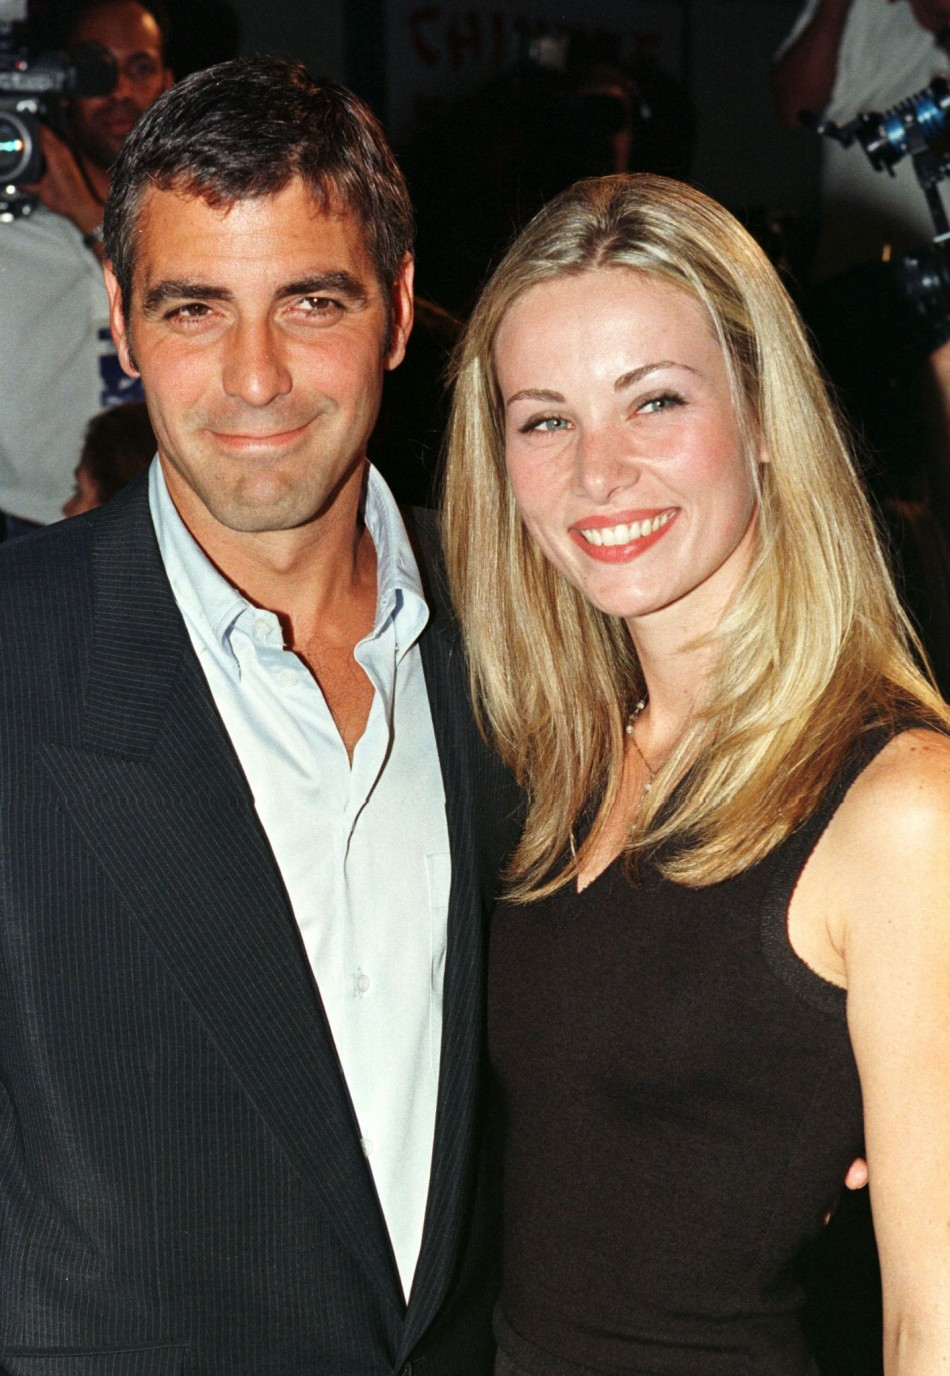 George clooney fiance age - photo#24